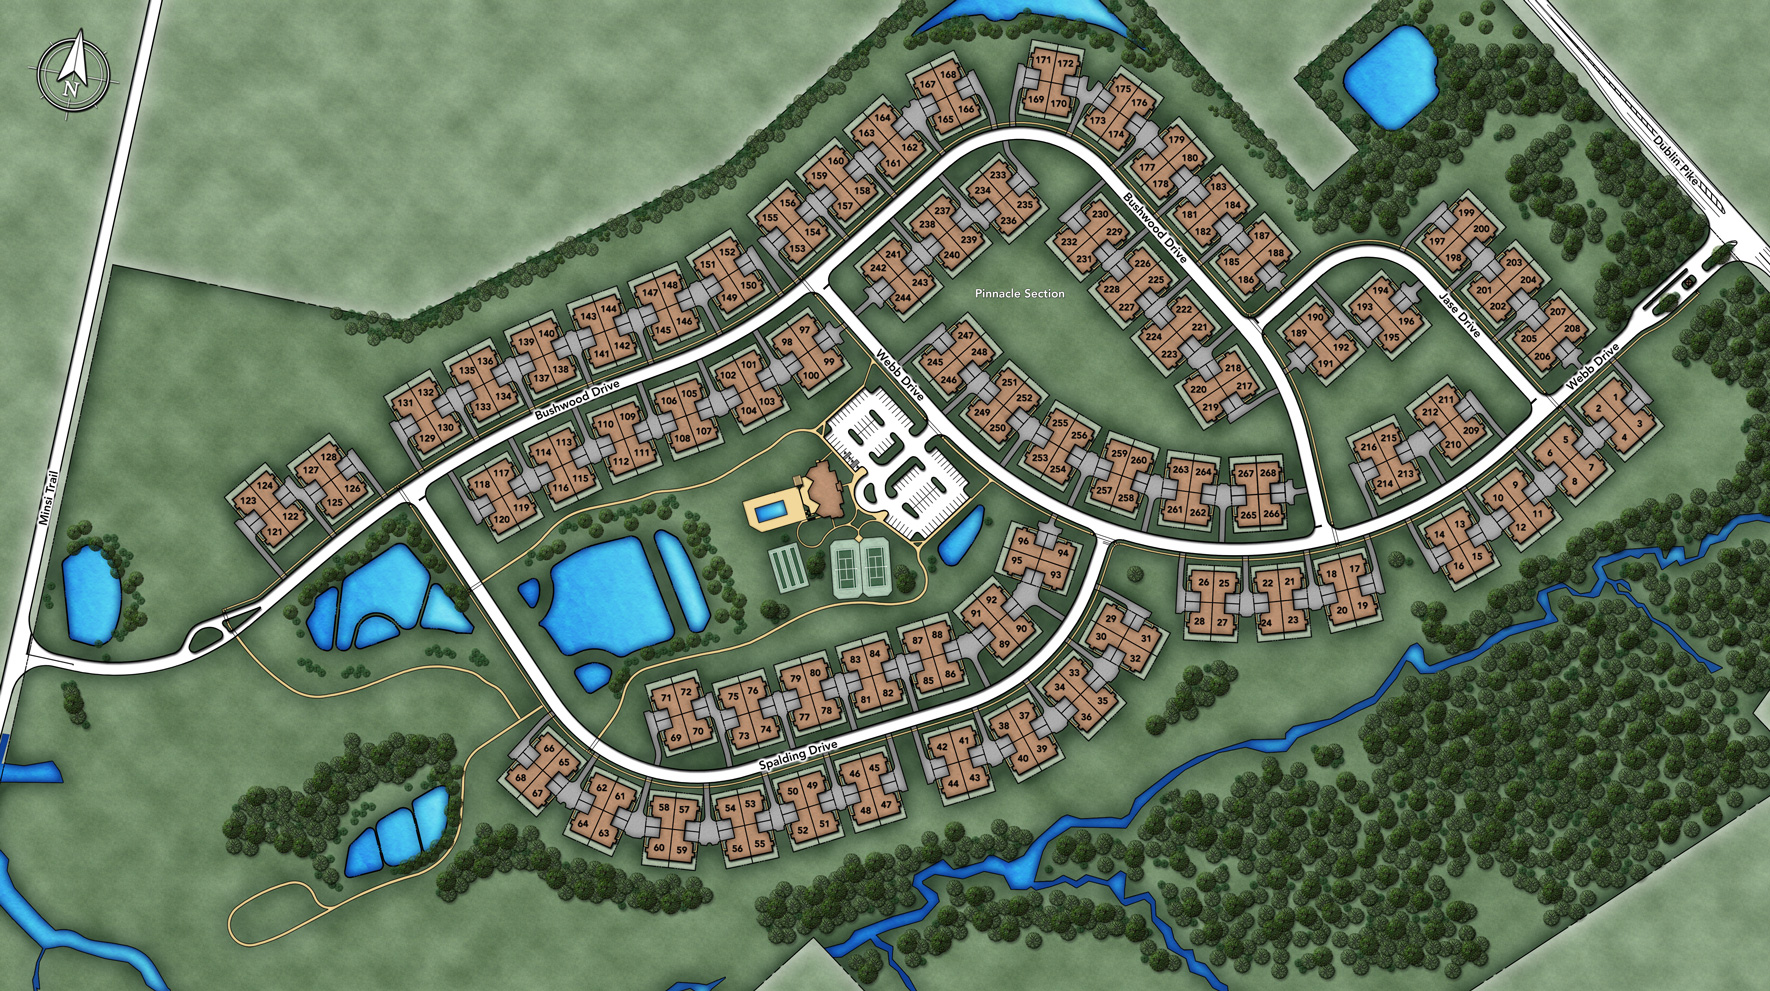 Regency at Hilltown Overall Site Plan